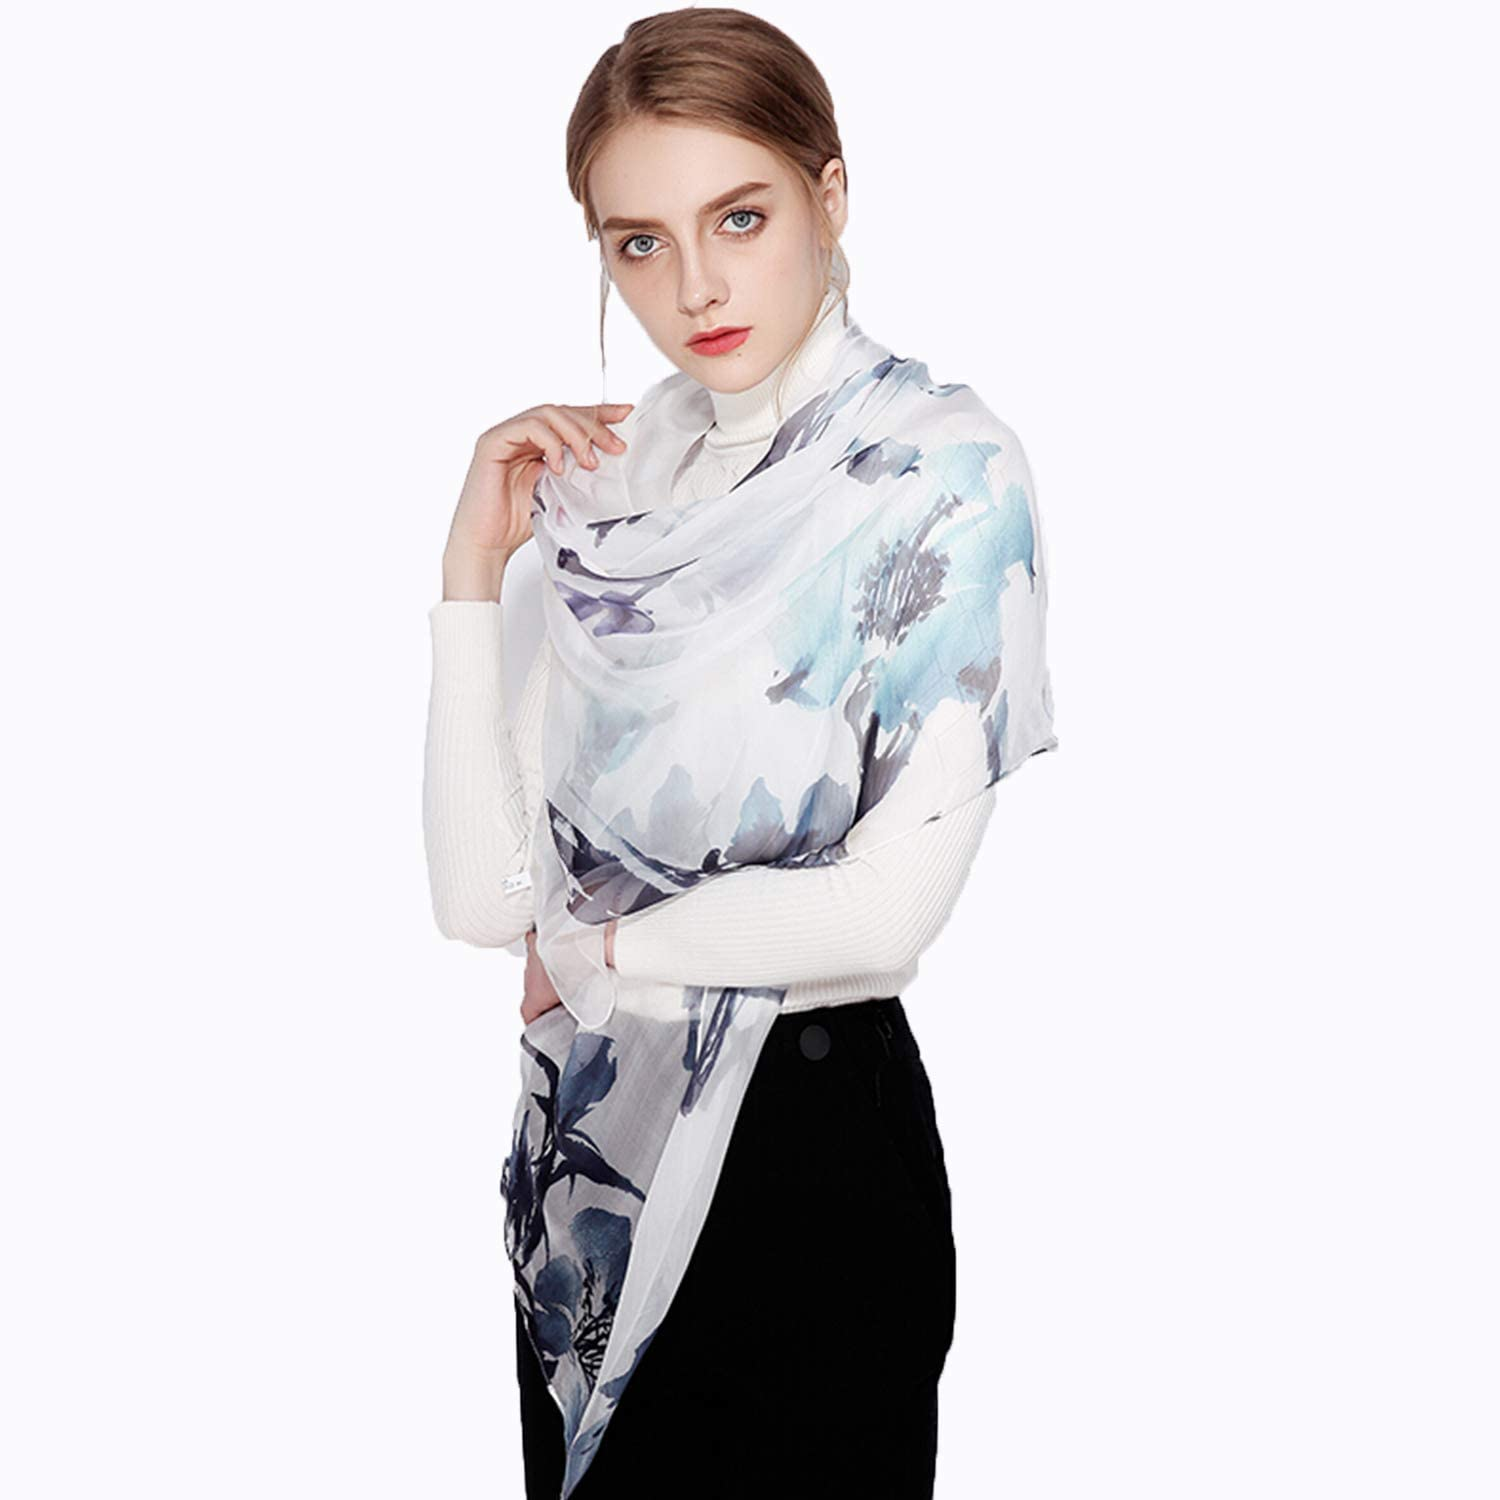 Silk Printed Scarf for Women,Fashion Casual Soft Wrap Shawl for Ladies & Girls Autumn Winter Wear,180 X 65cm